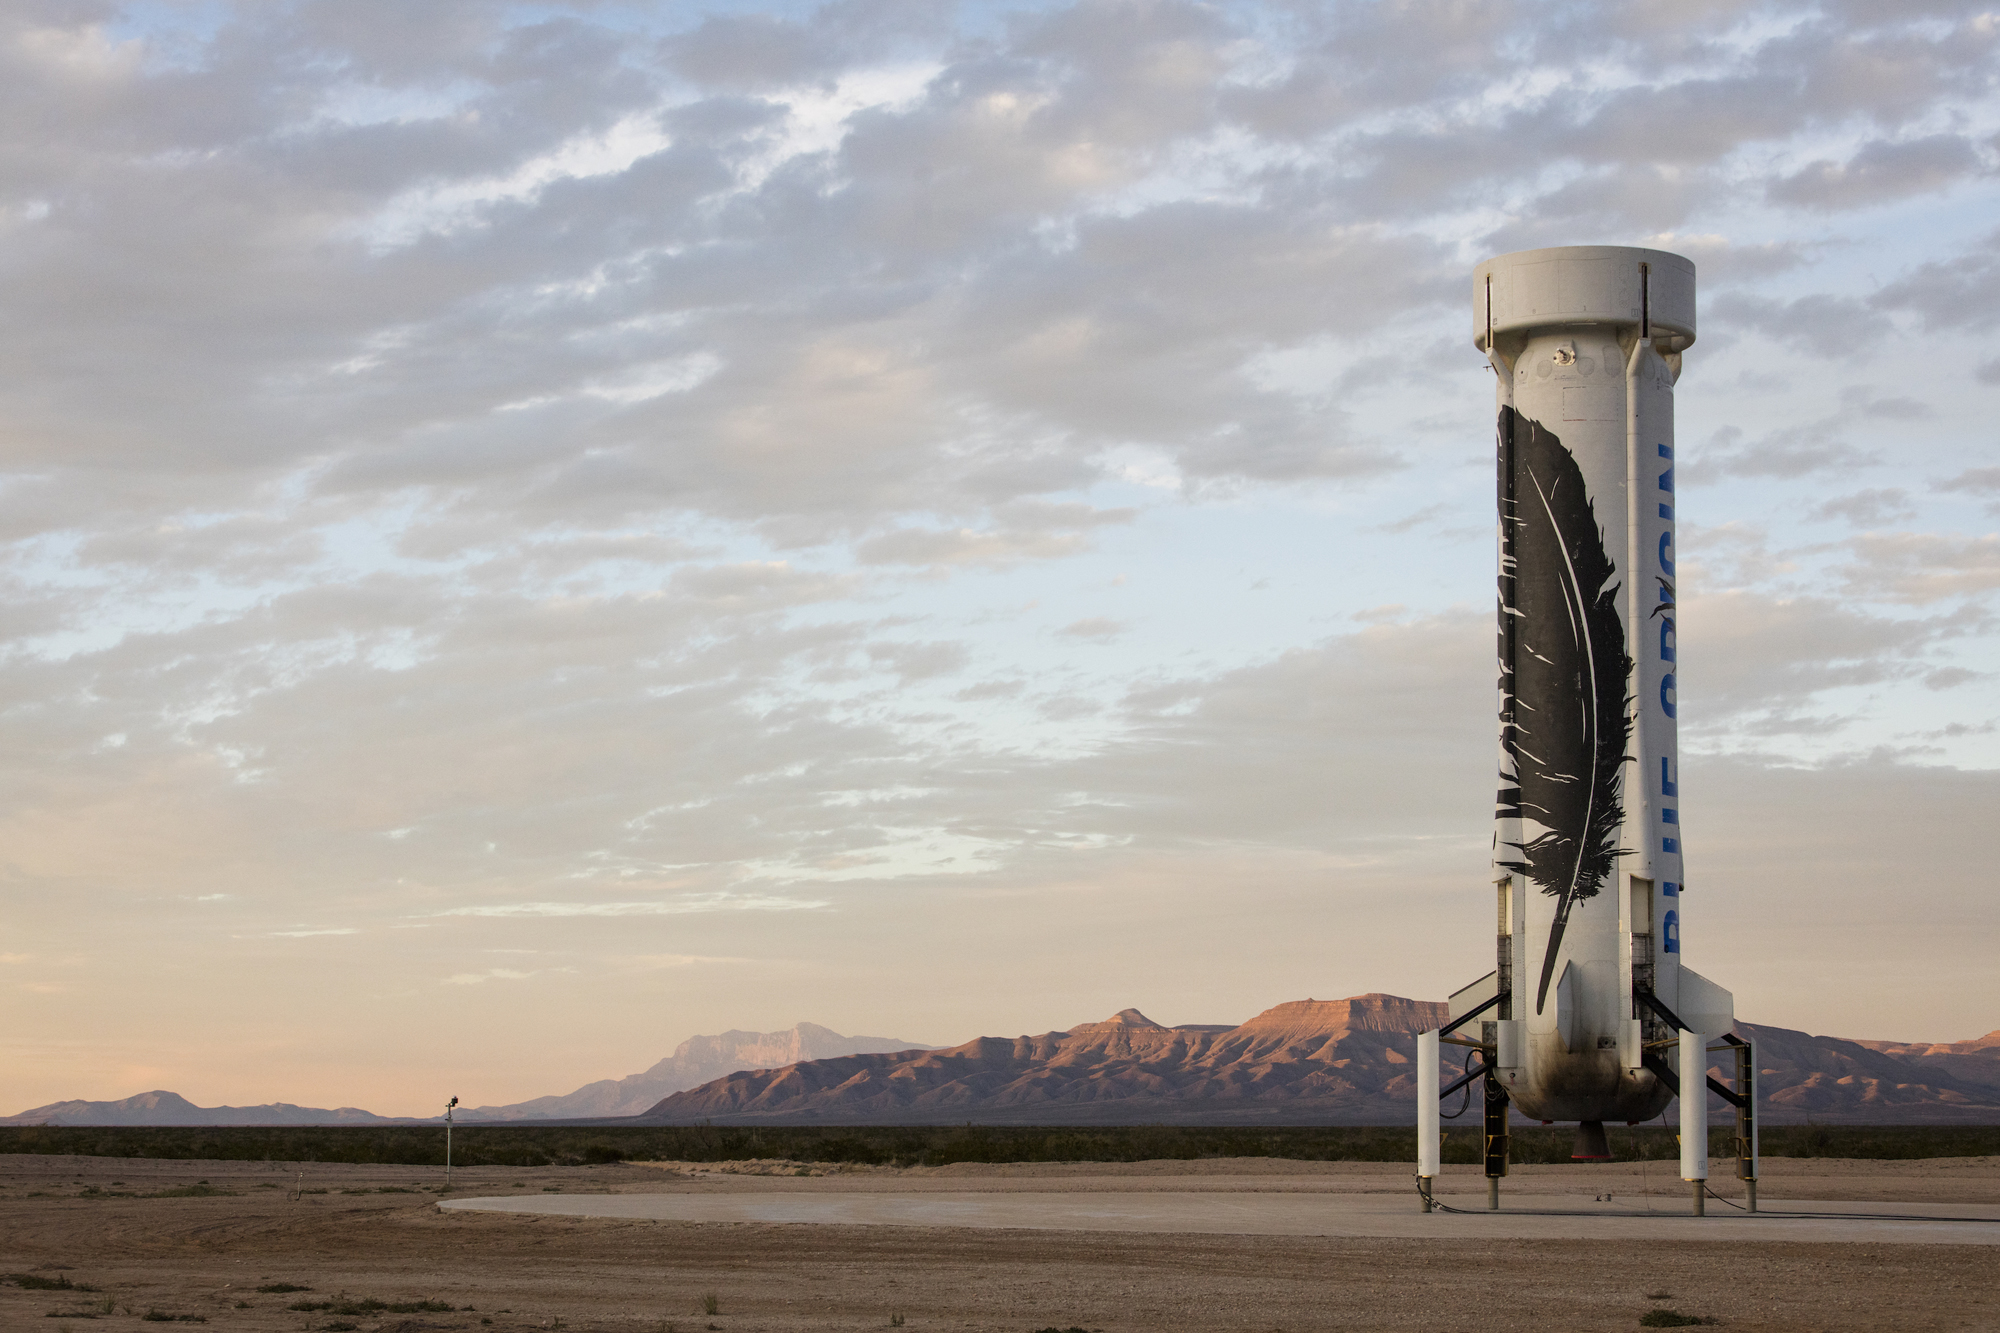 Jeff Bezos' Blue Origin Launches and Lands Private Rocket for Third Time